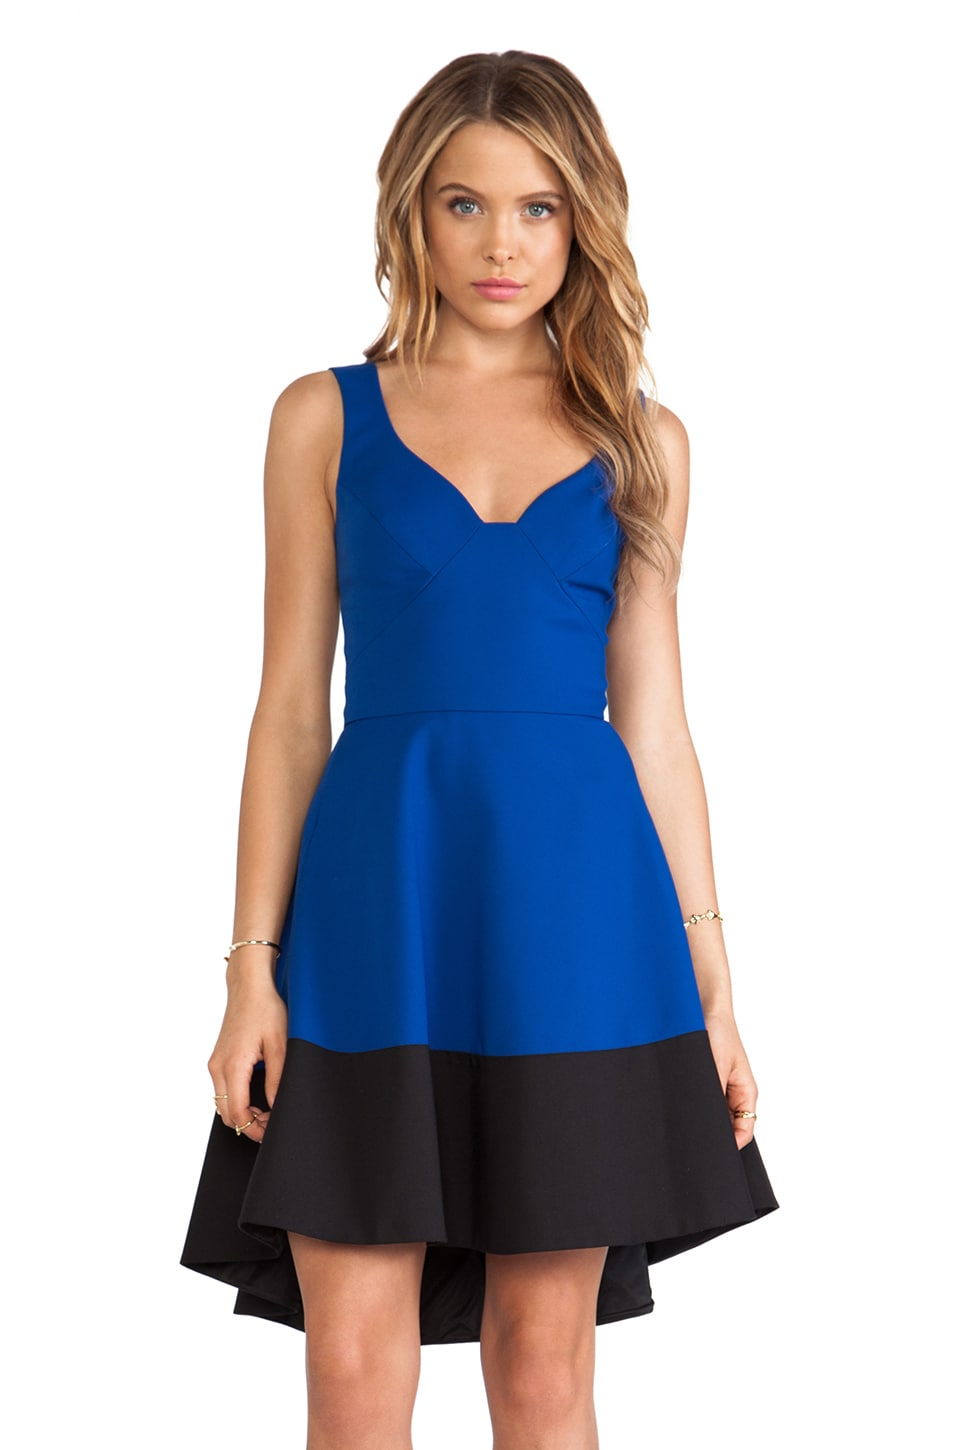 Black Halo Reese Dress in Dragonfly Blue & Black